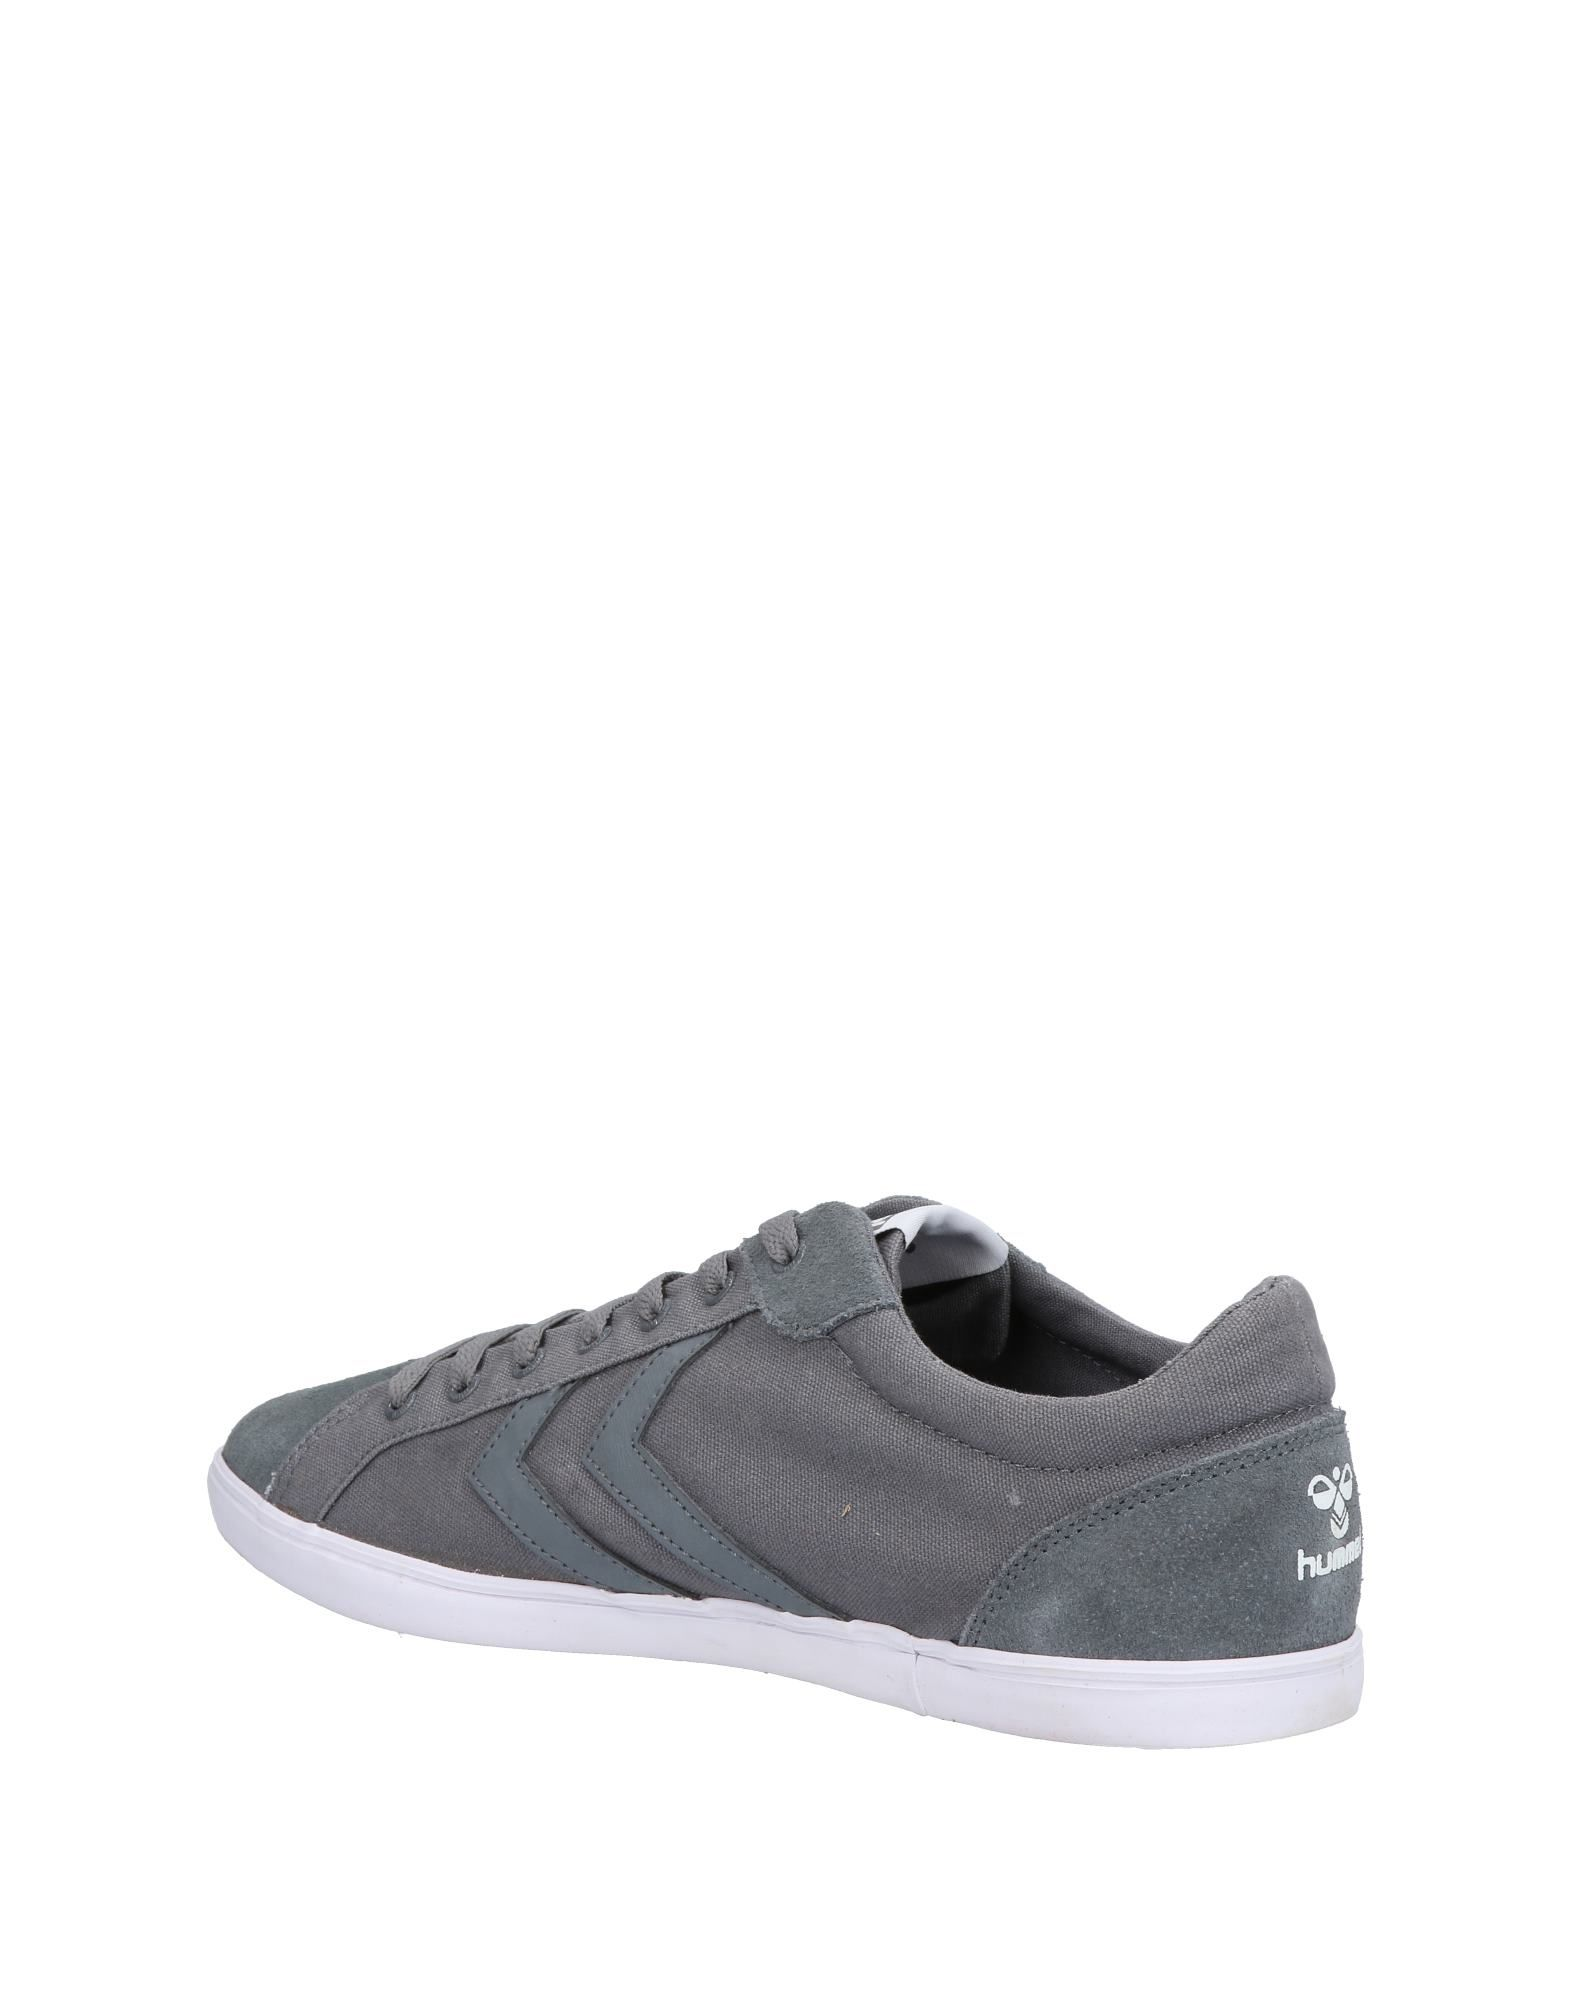 Hummel Sneakers Sneakers Sneakers - Men Hummel Sneakers online on  Canada - 11415131DC d20aa9